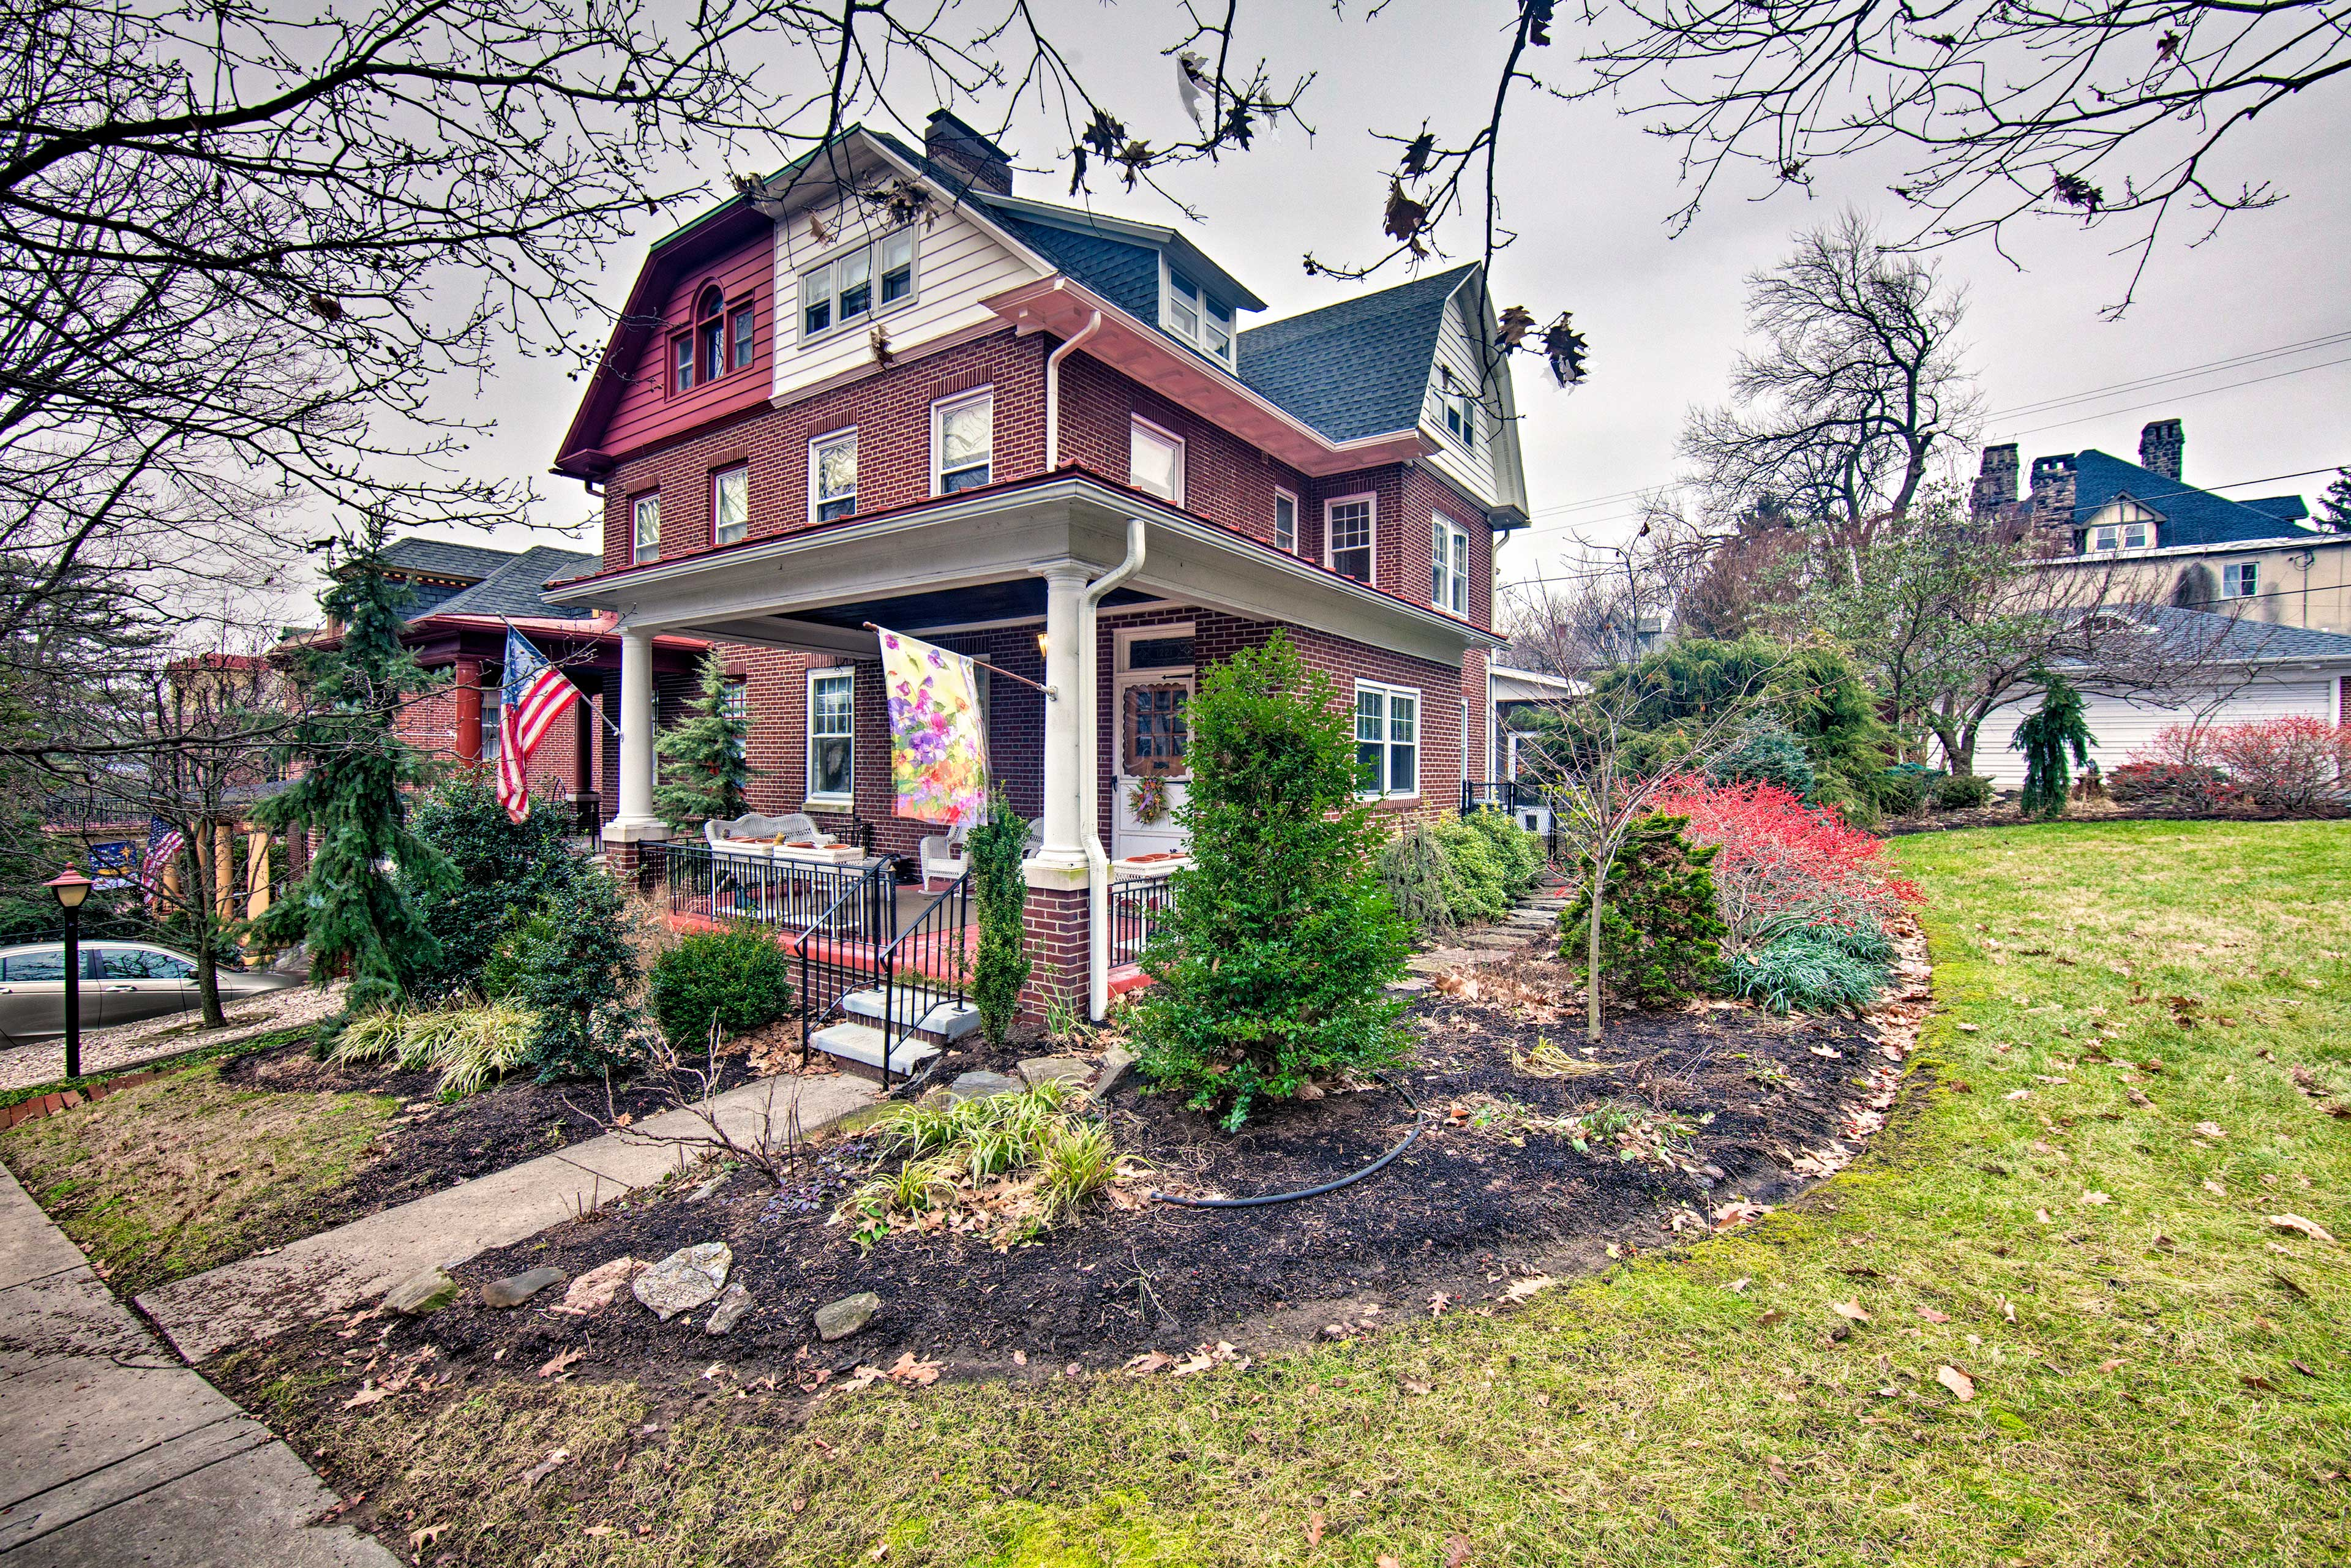 You'll fall in love with this charming home in Reading, Pennsylvania!